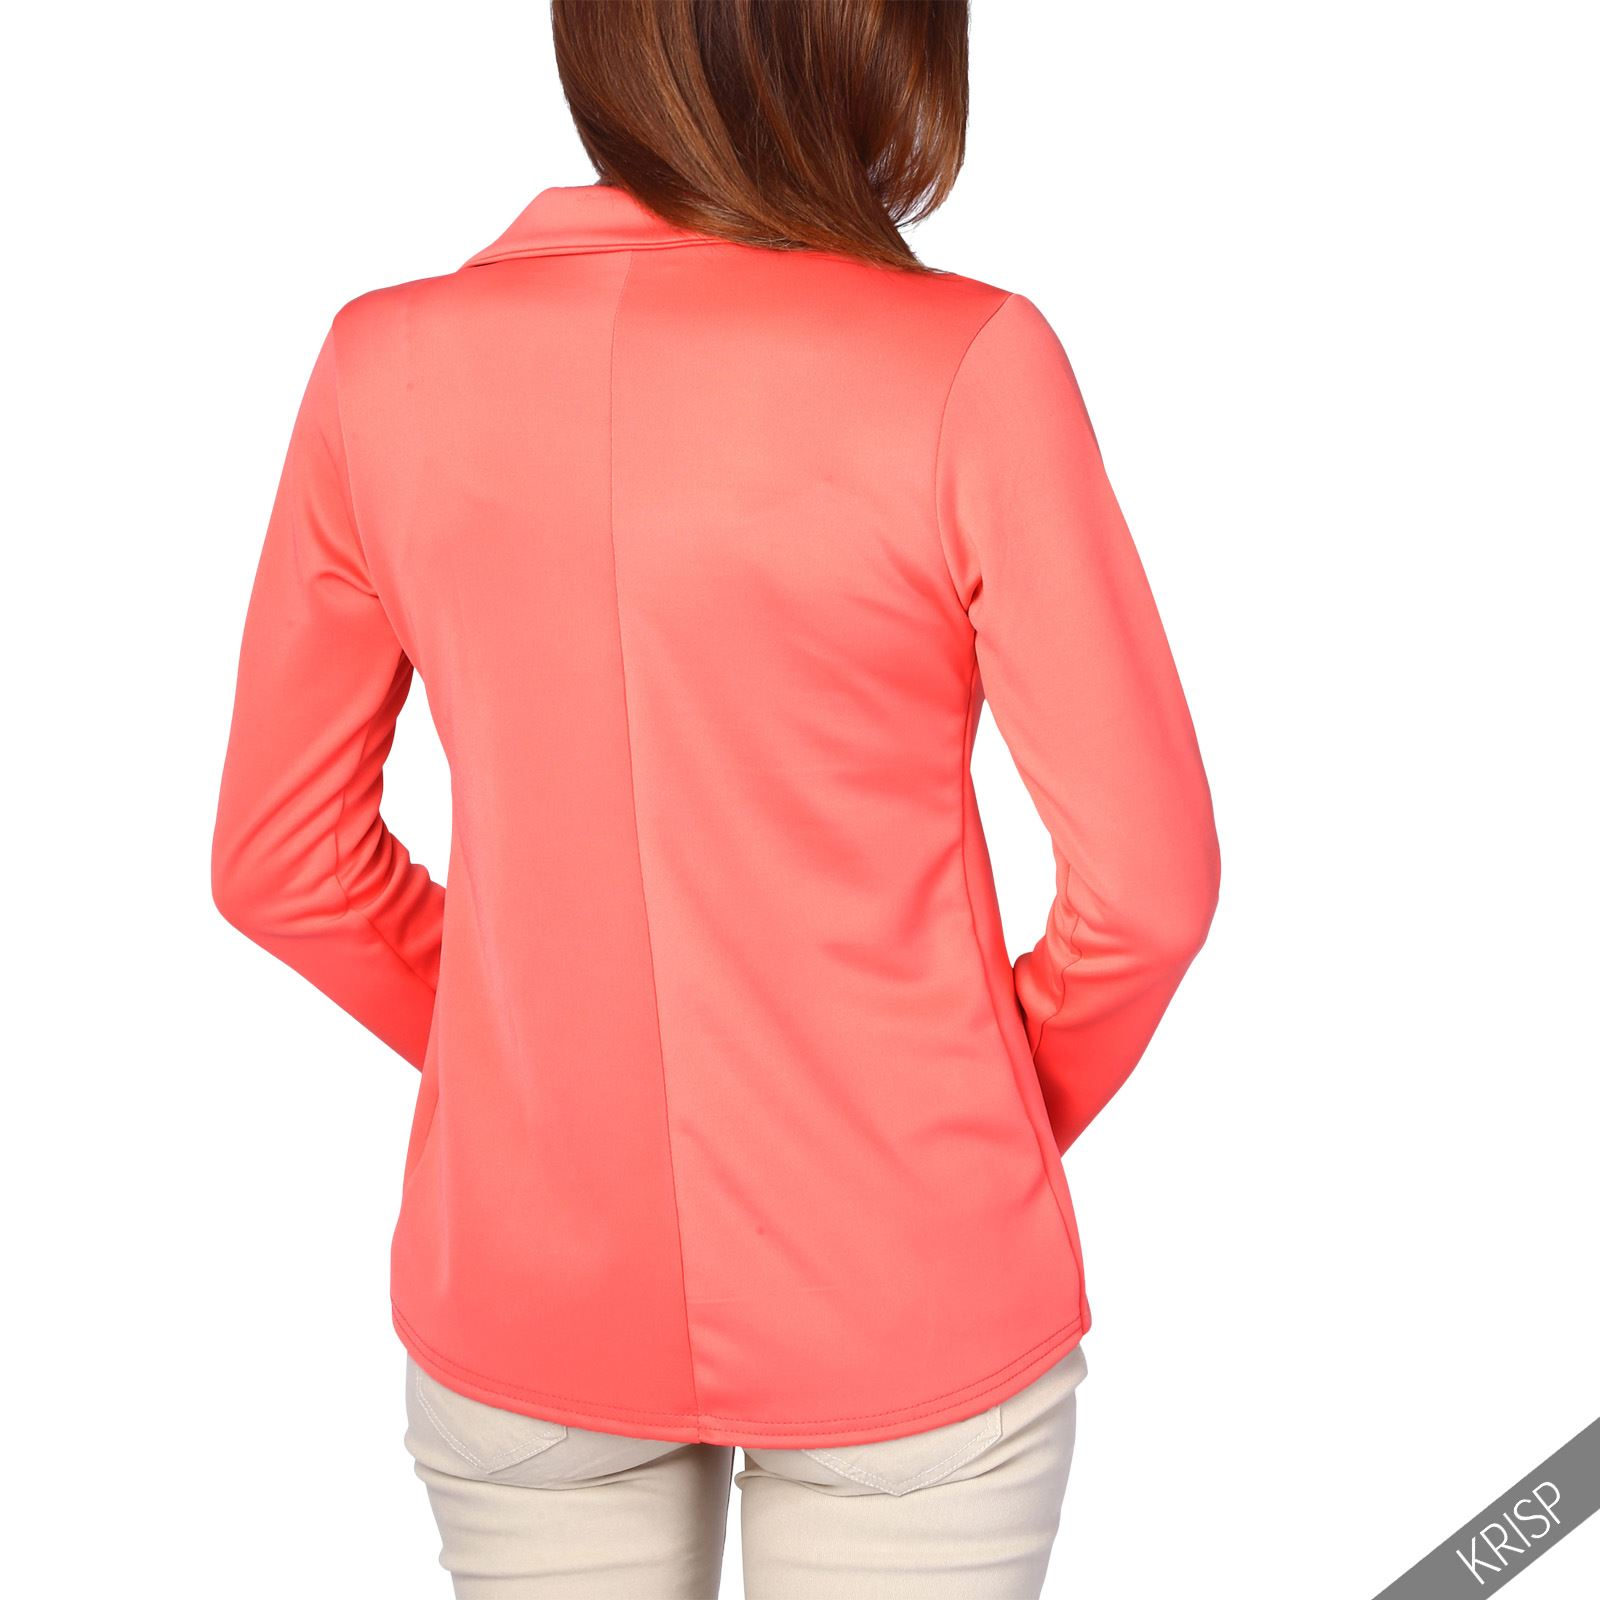 Womens-Jacket-Shrug-Casual-Blazer-Jersey-Smart-Suit-Ladies-Office-Evening-Coat thumbnail 11